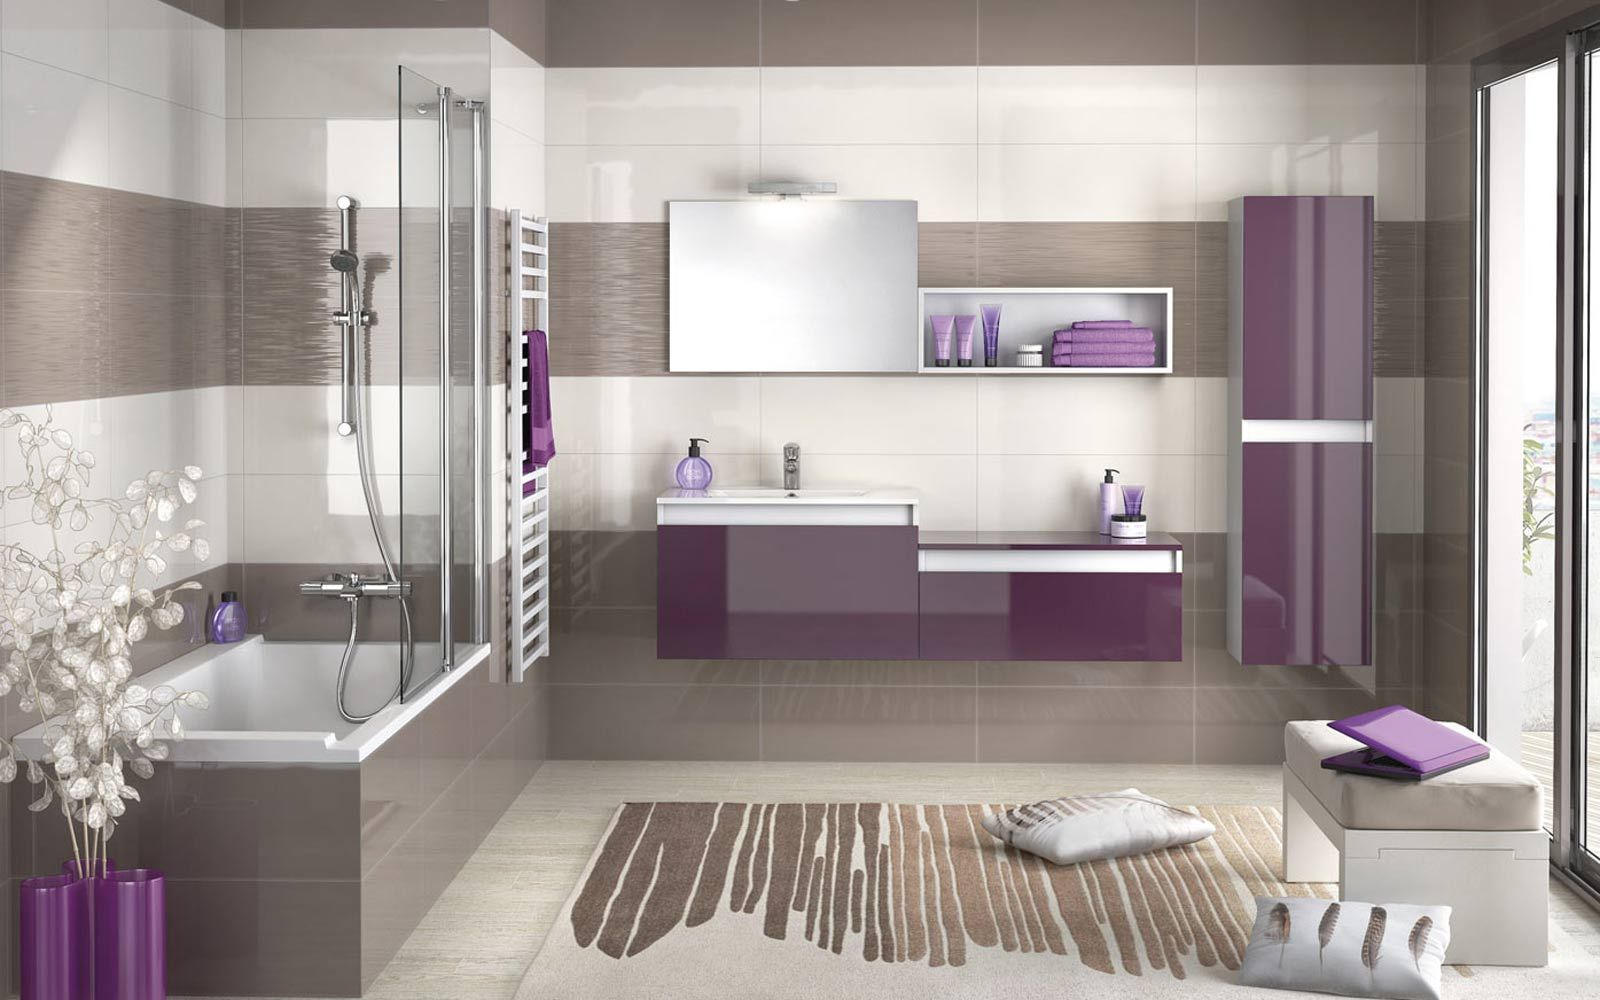 Collection de salle de bain violette delpha d motion for Devis salle de bain aubade